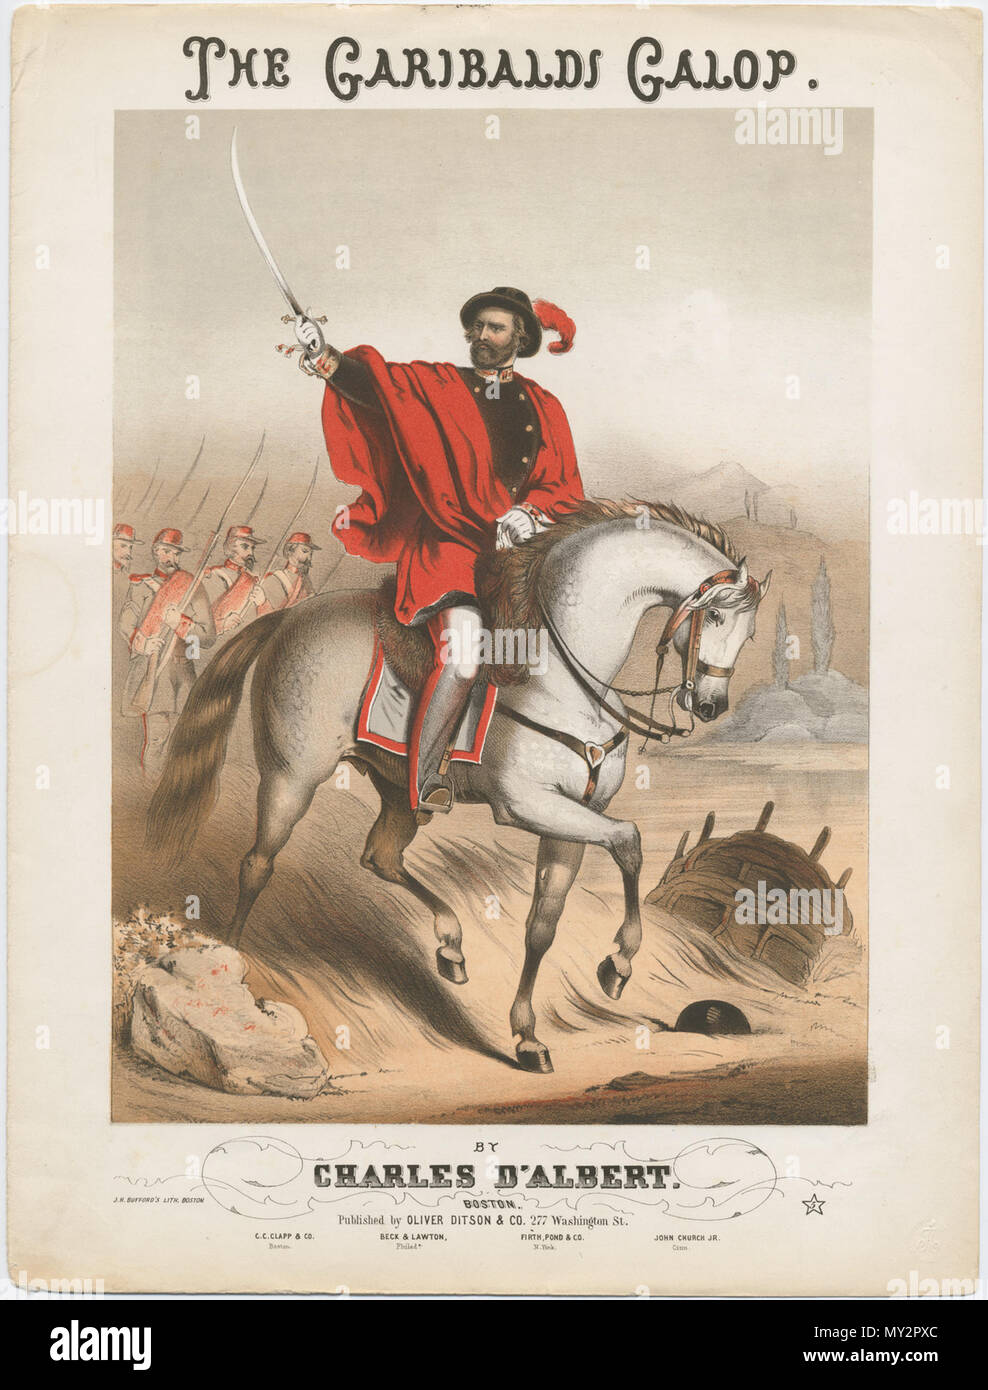 . English: Music cover sheet: Garibaldi on horseback, directed to right, with head turned to look to left, wearing a plumed hat and red drape around his shoulders over a double-breasted black coat, his right arm outstretched, holding up a sword in his hand, followed by a group of armed soldiers at left; basket at right, a lake or river behind, trees on the opposite shore, and hills in the distance; outer border surrounding image. Lithograph, printed in colour, with additional hand-colouring . 1841-1863 (circa). Print made by John Brandard 520 The Garibaldi Galop. - Stock Image